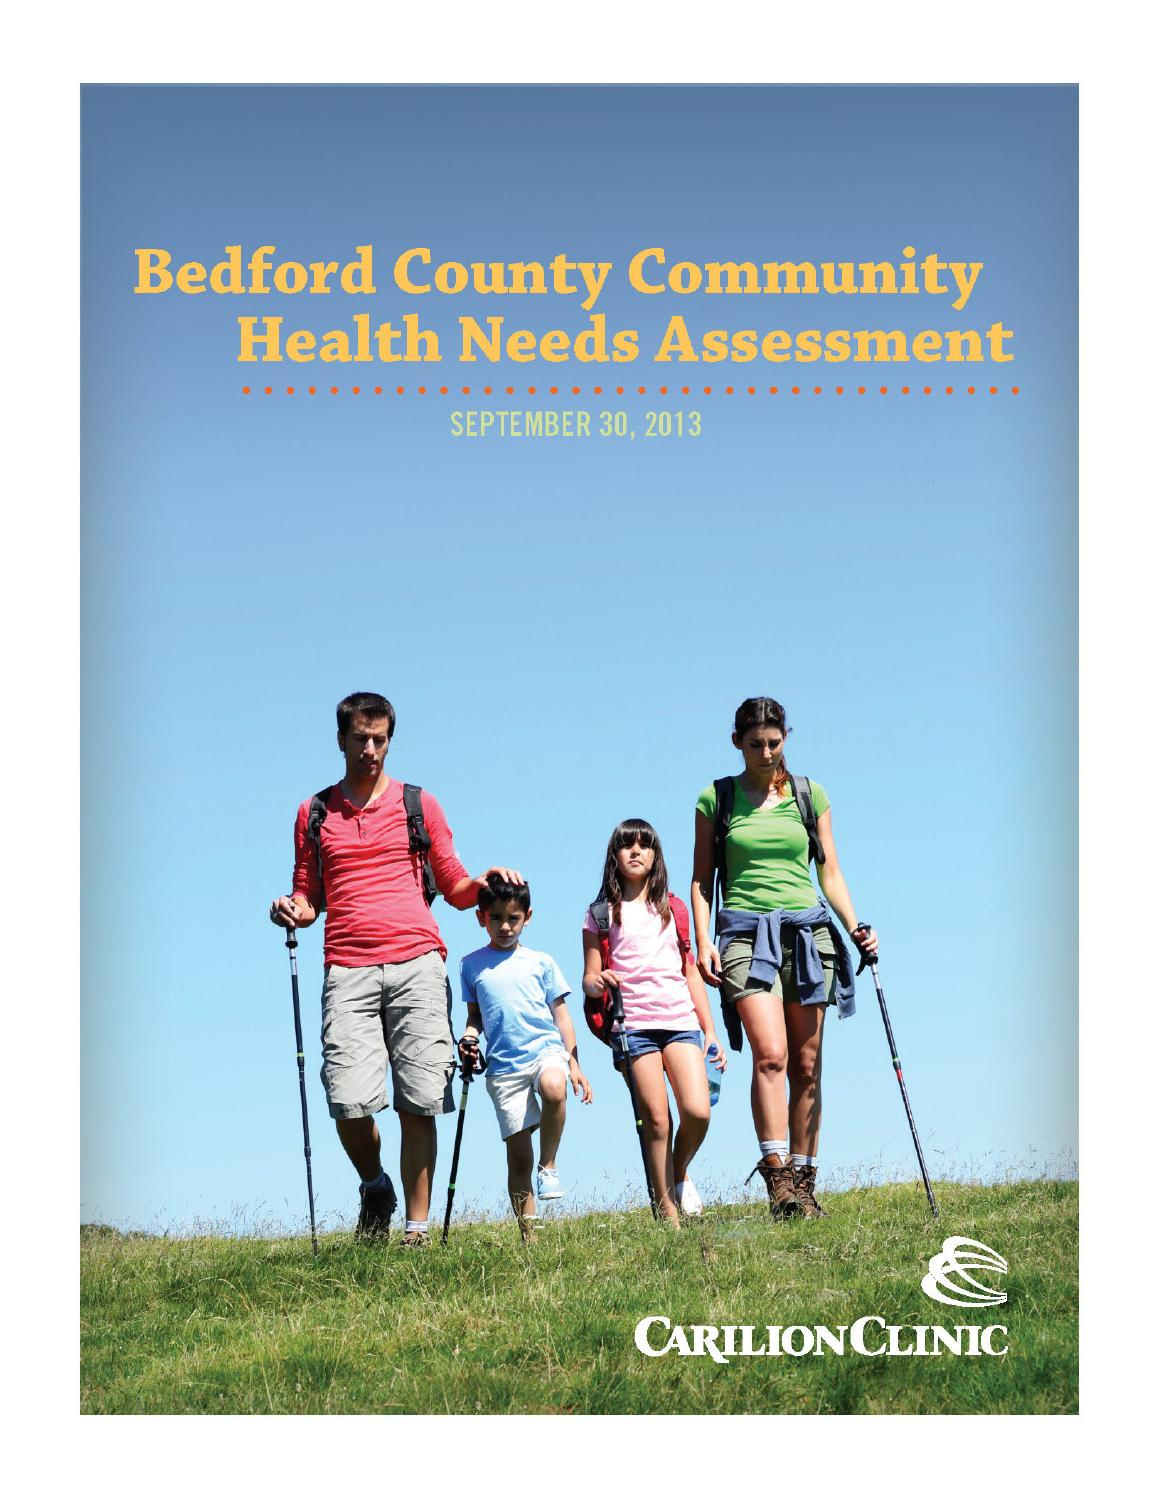 Bedford County Community Health Needs Assessment By Carilion Clinic   Issuu